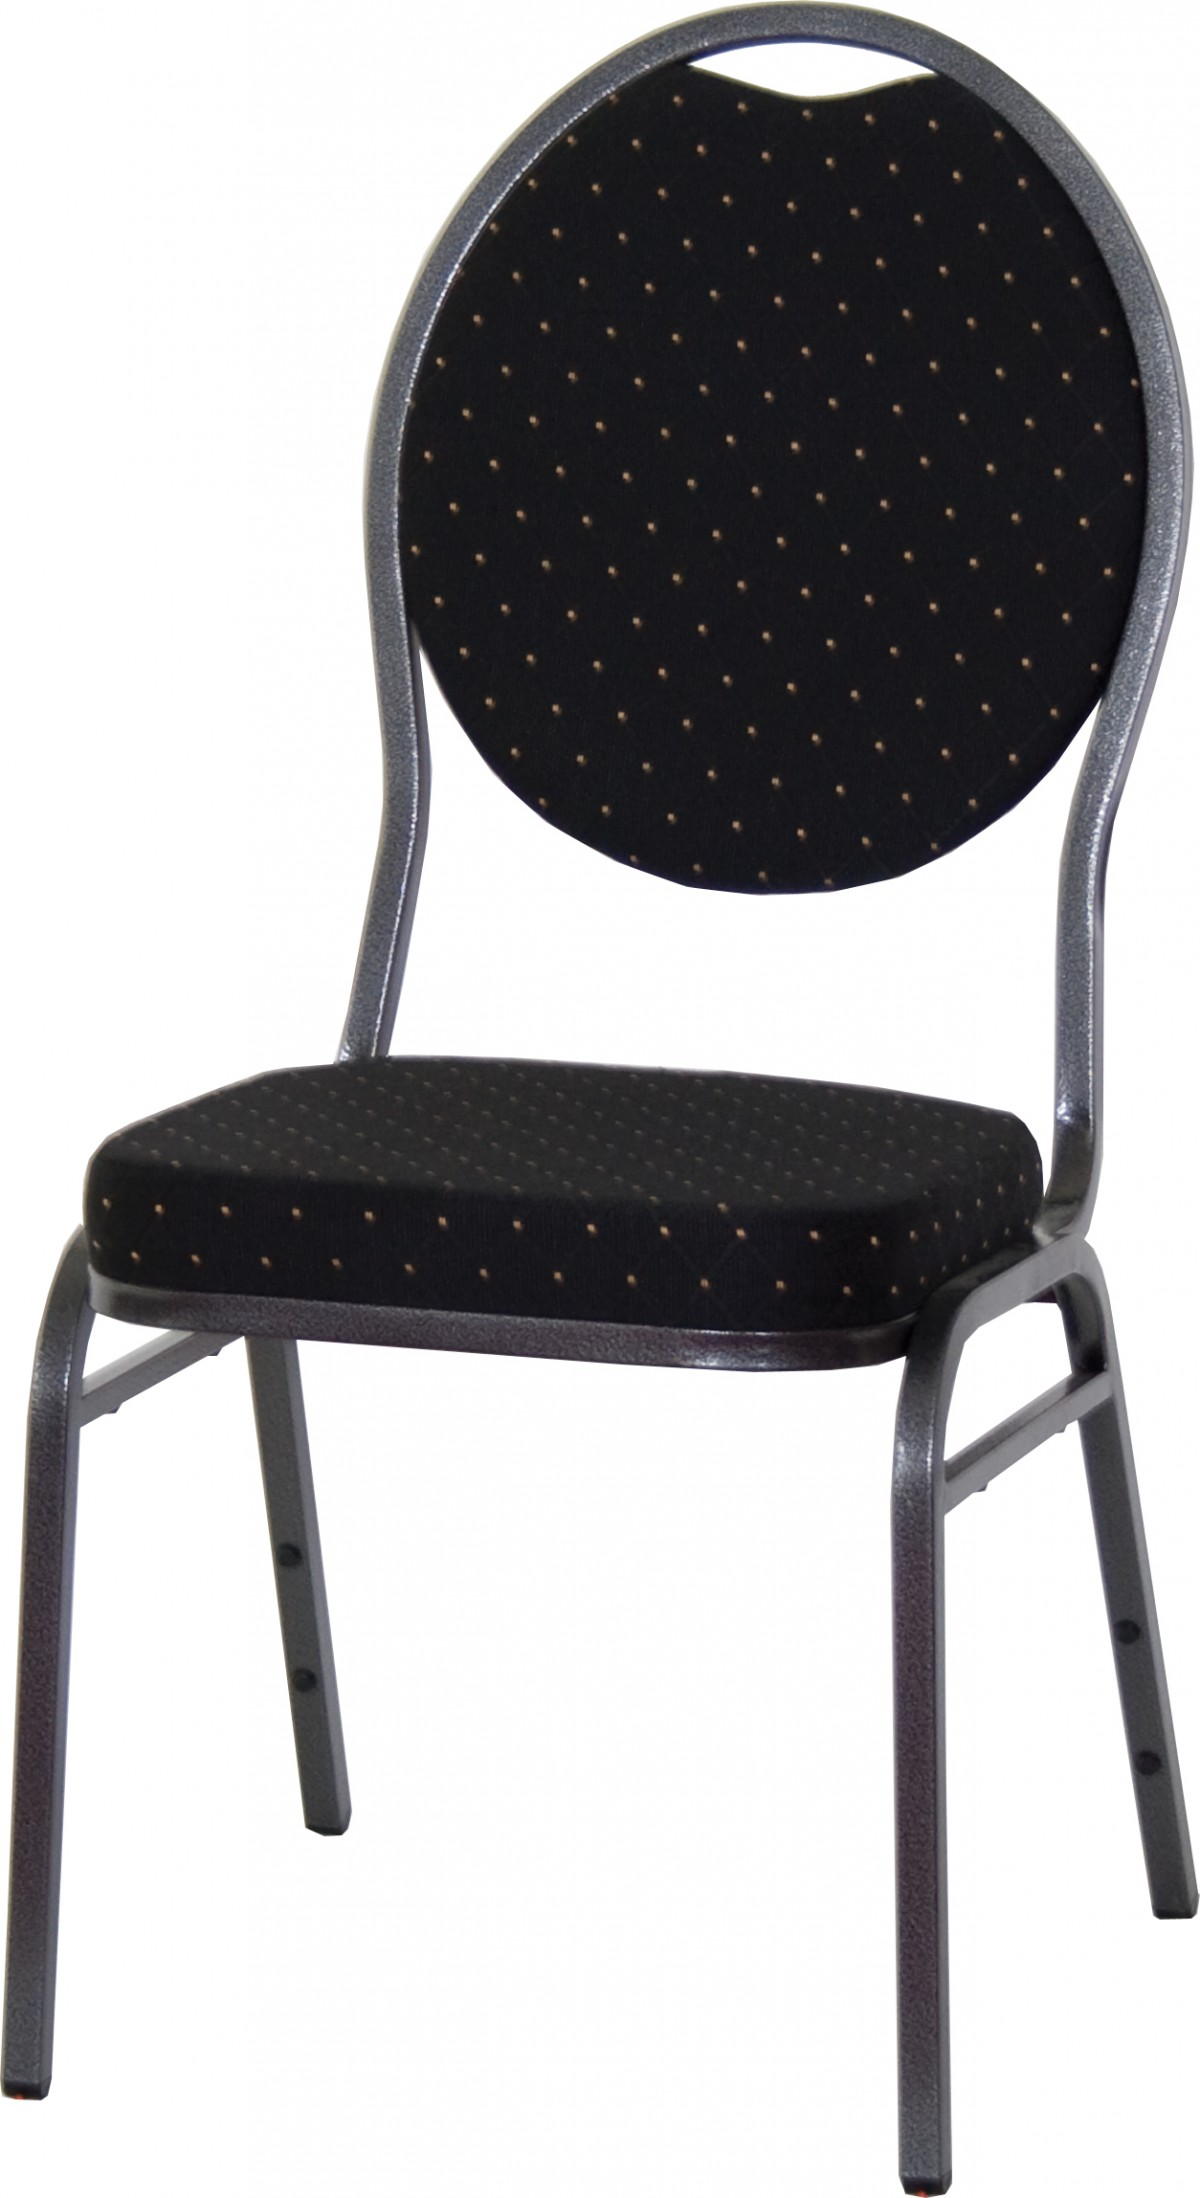 Standard Steel Conference Chair